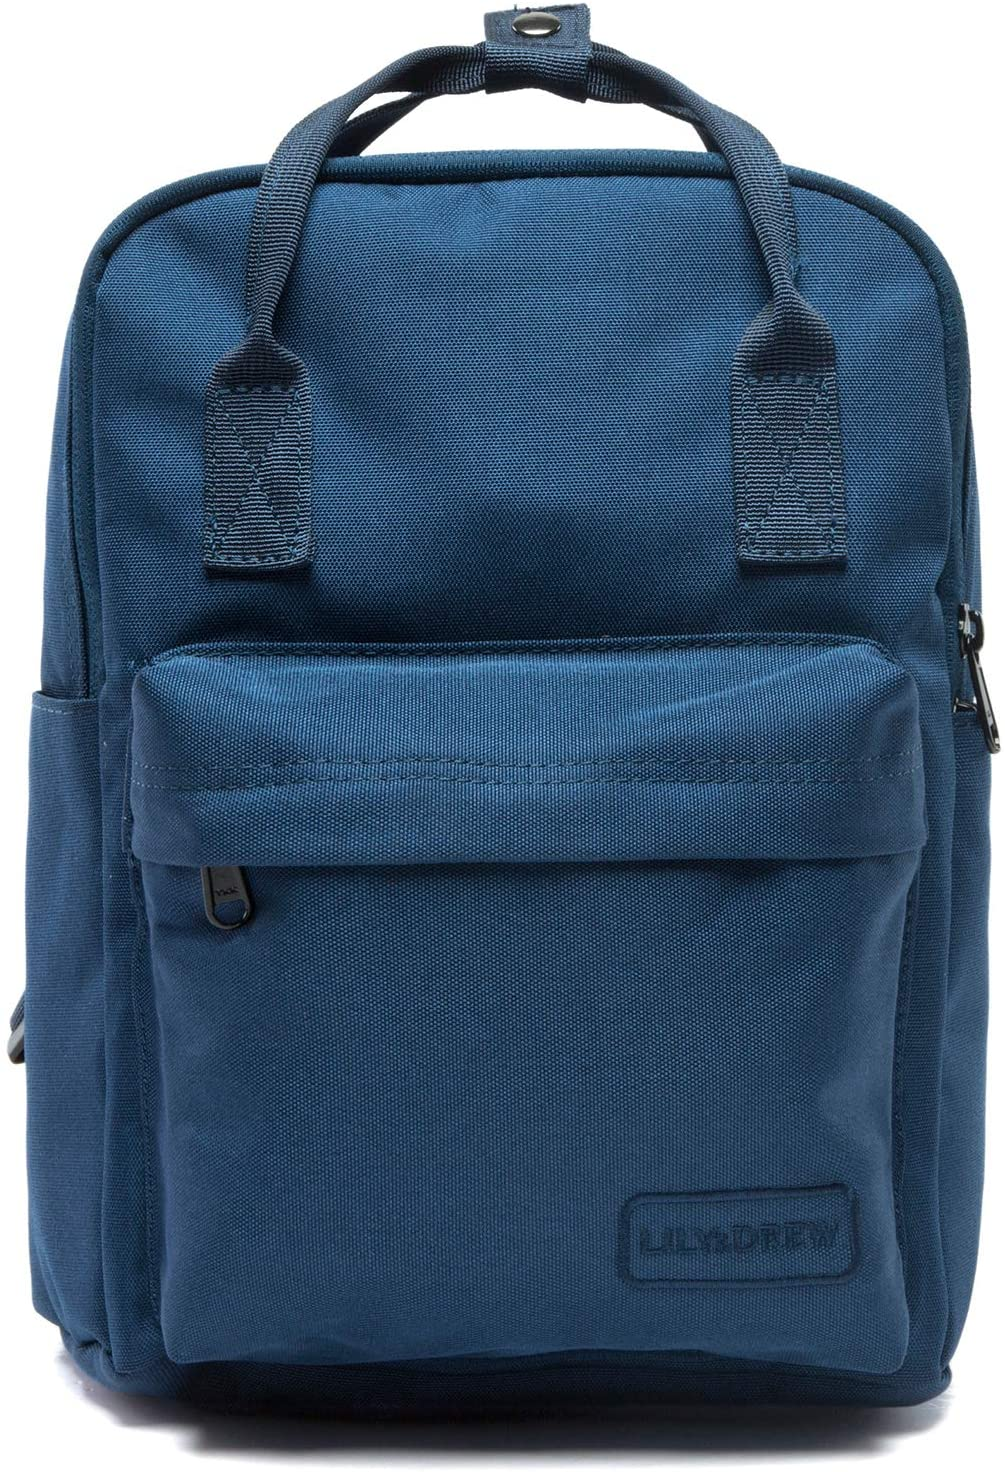 Lily & Drew Small Casual Lightweight Mini Travel Backpack Purse with Top Handles Waterproof for Women (Poly-Navy Blue)